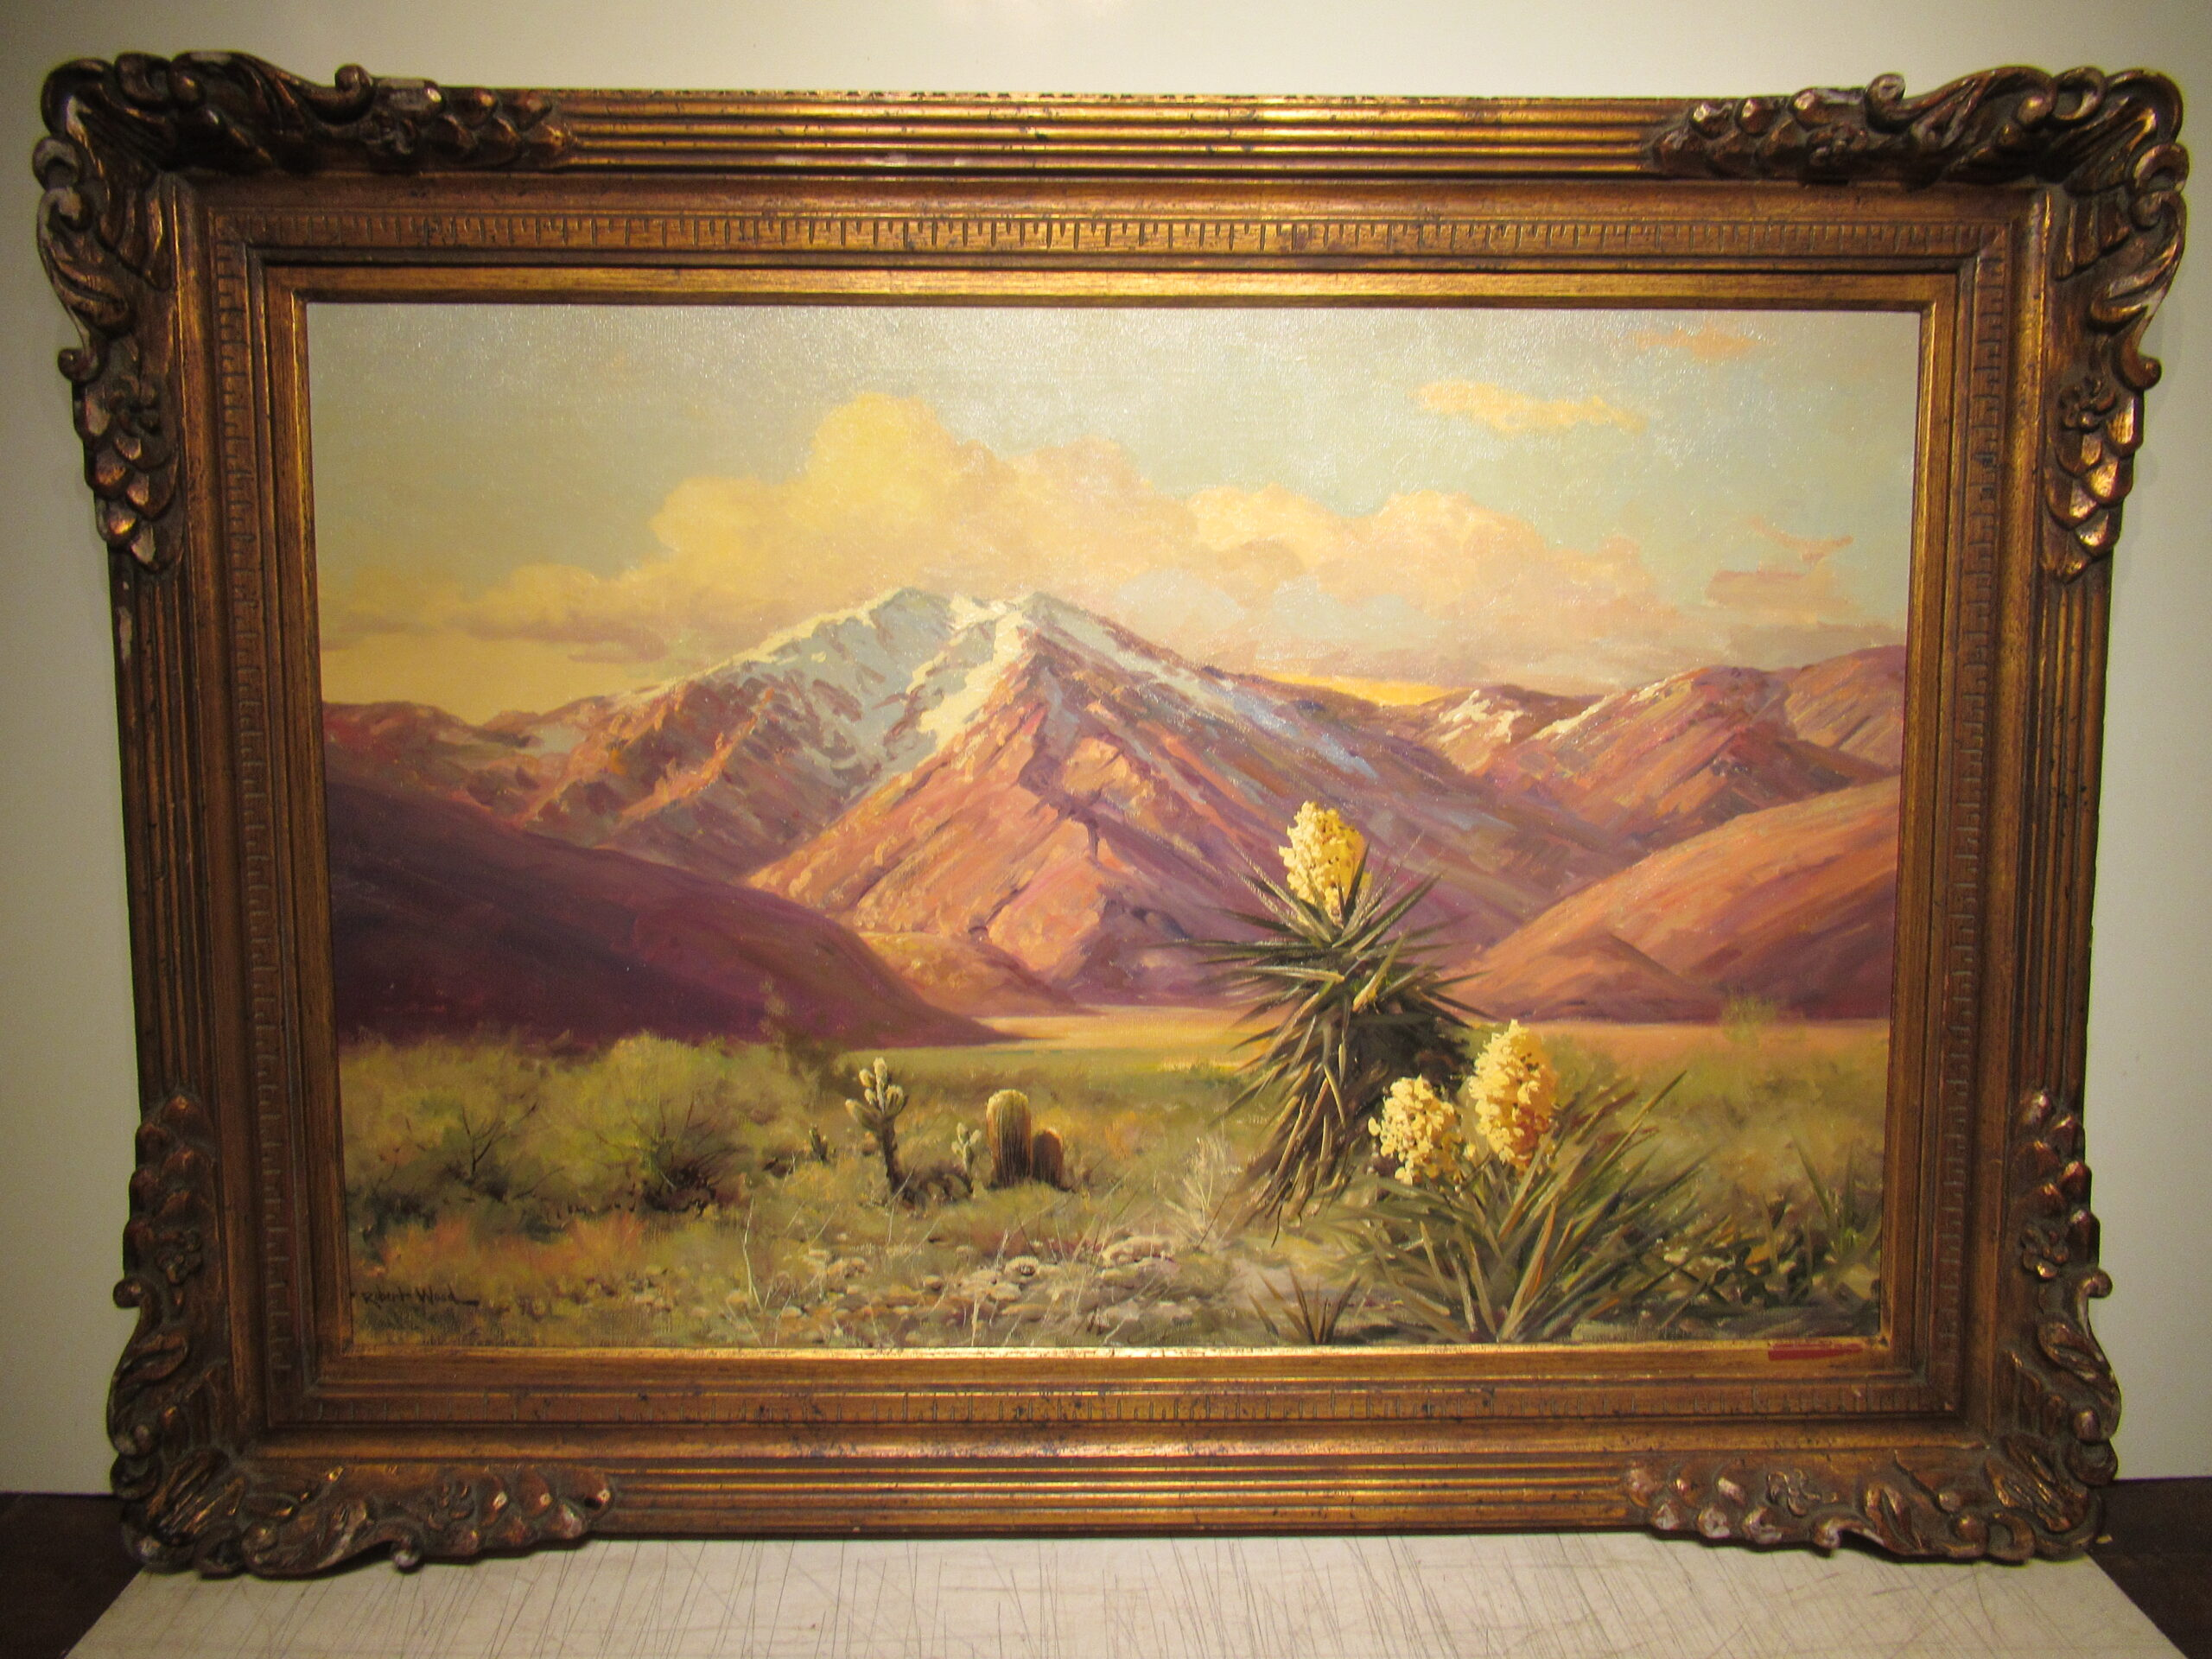 24×36 Robert Wood 1940 Calif. Desert Oil Painting